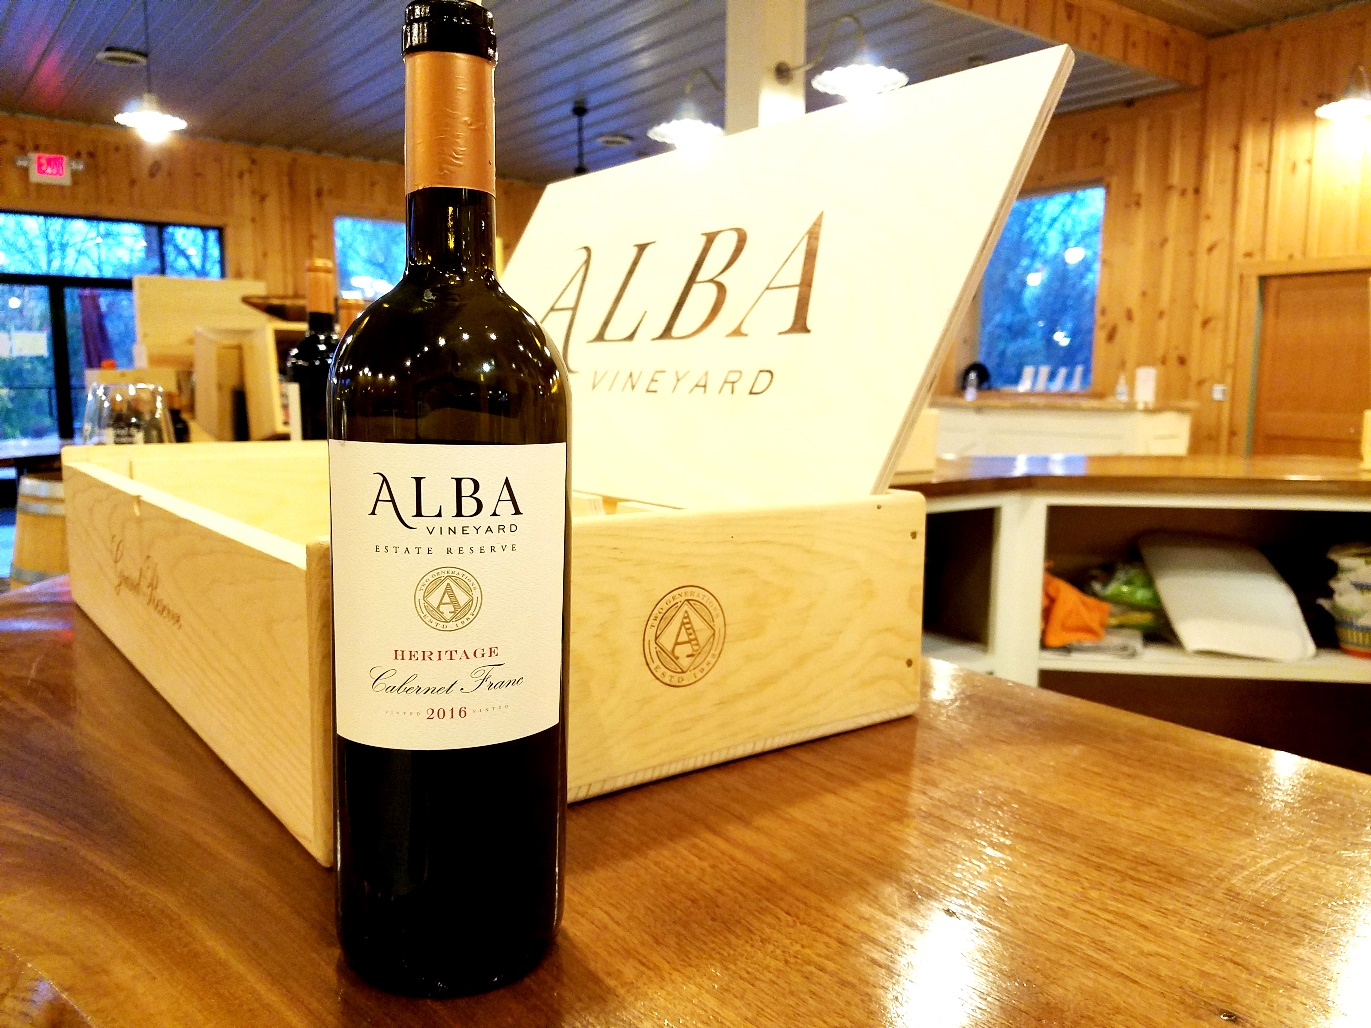 Alba Vineyard, Estate Reserve Heritage Cabernet Franc 2016, New Jersey, Wine Casual